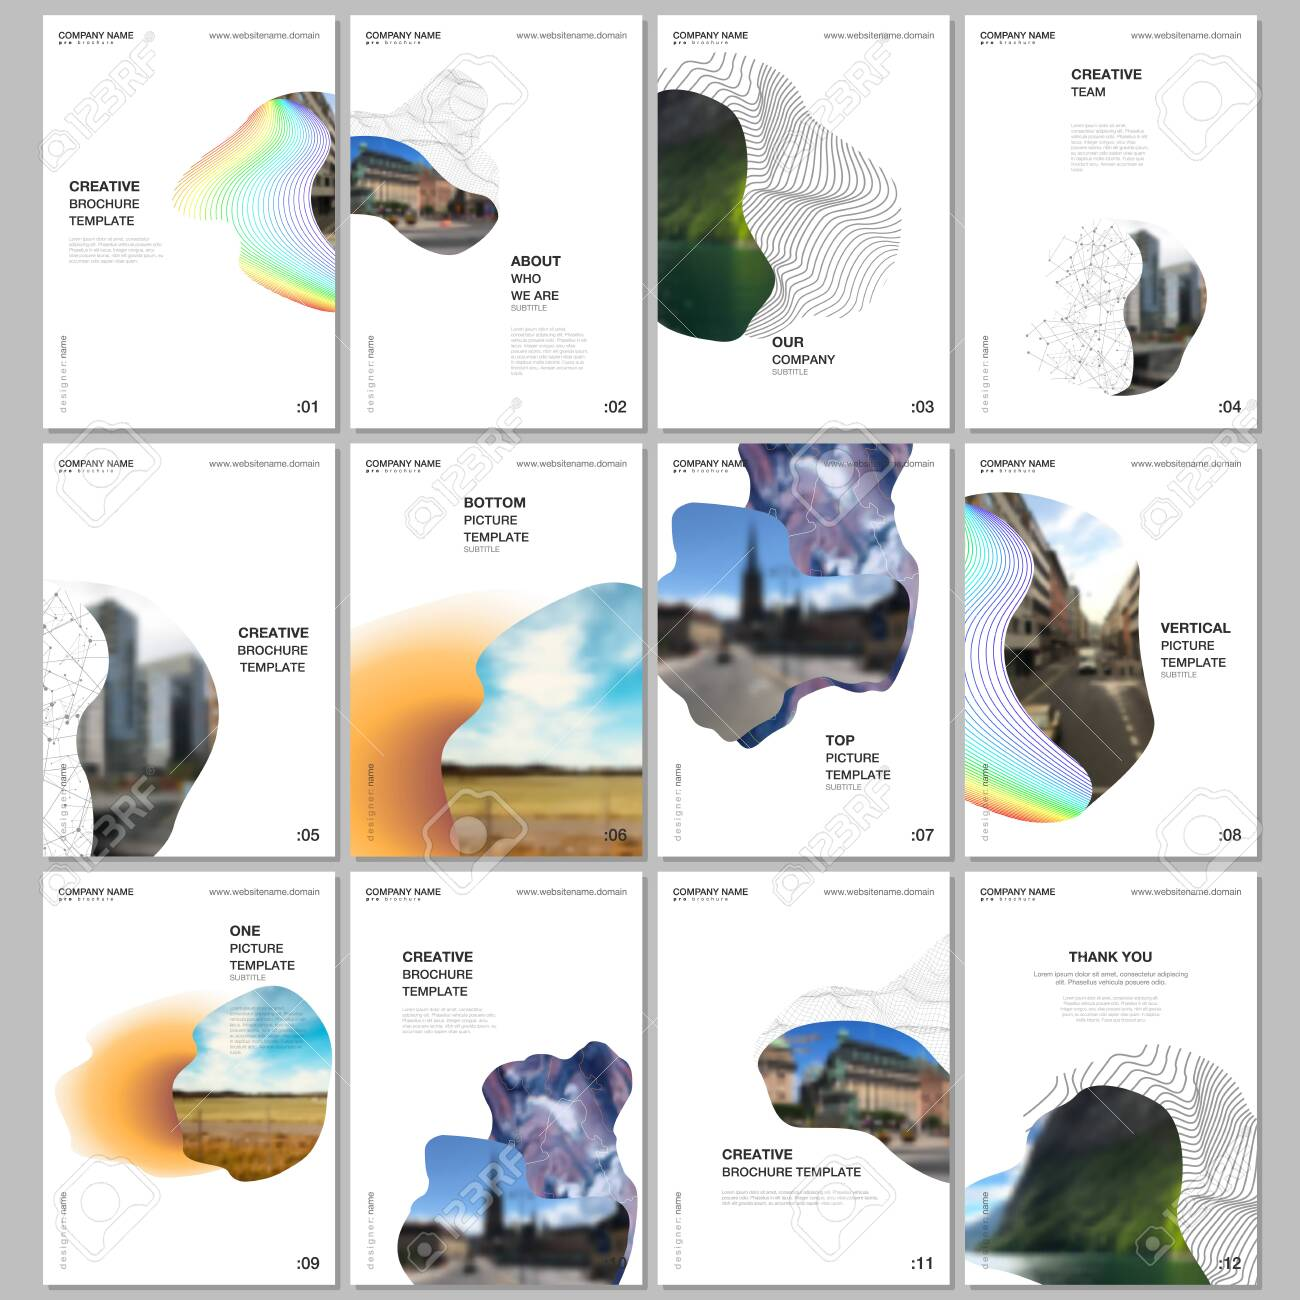 A4 brochure layout of covers design templates for flyer leaflet, A4 format brochure design, report, presentation, magazine cover, book design. Simple minimal background with geometric curved shapes. - 144572215